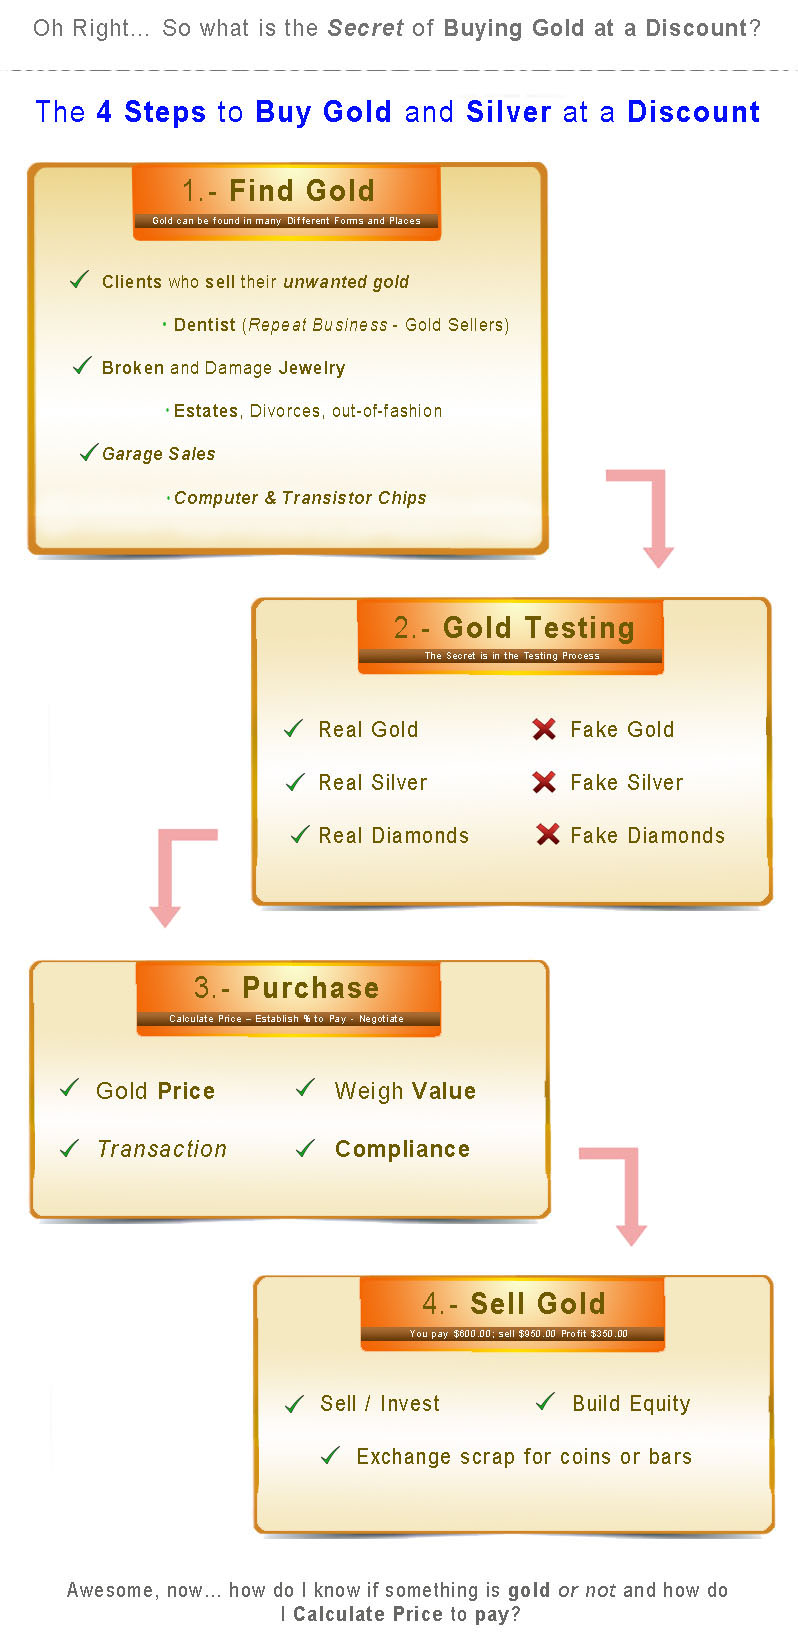 M2-4-Steps-buy-gold-silver-platinum-diamonds-at-discount-profit-secret-formula